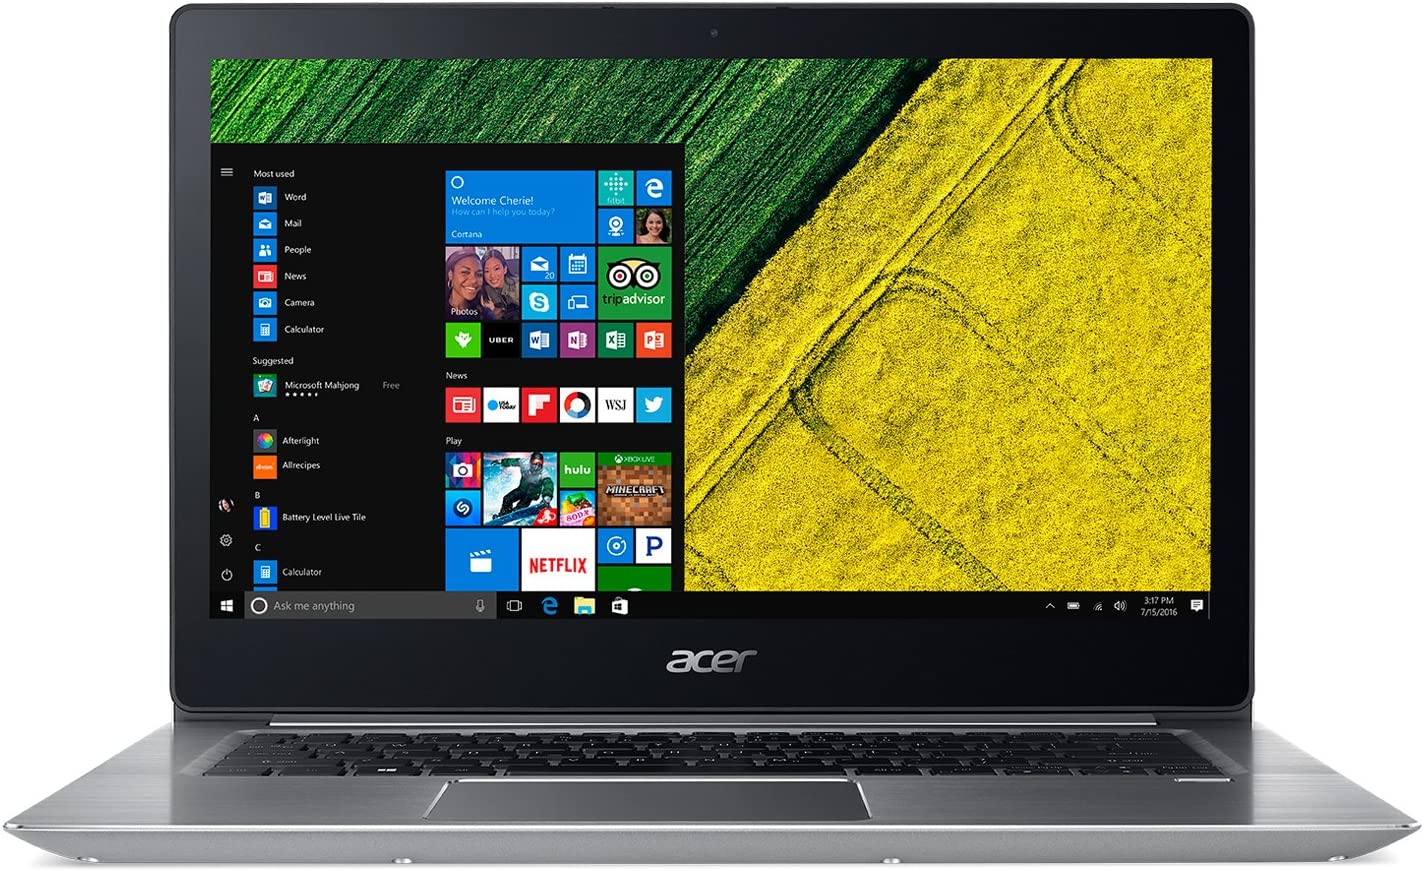 Acer 15.6in Intel Core i5 1.60 GHz 8 GB Ram 256GB SSD Windows 10H|SF315-51G-51CE (Renewed)